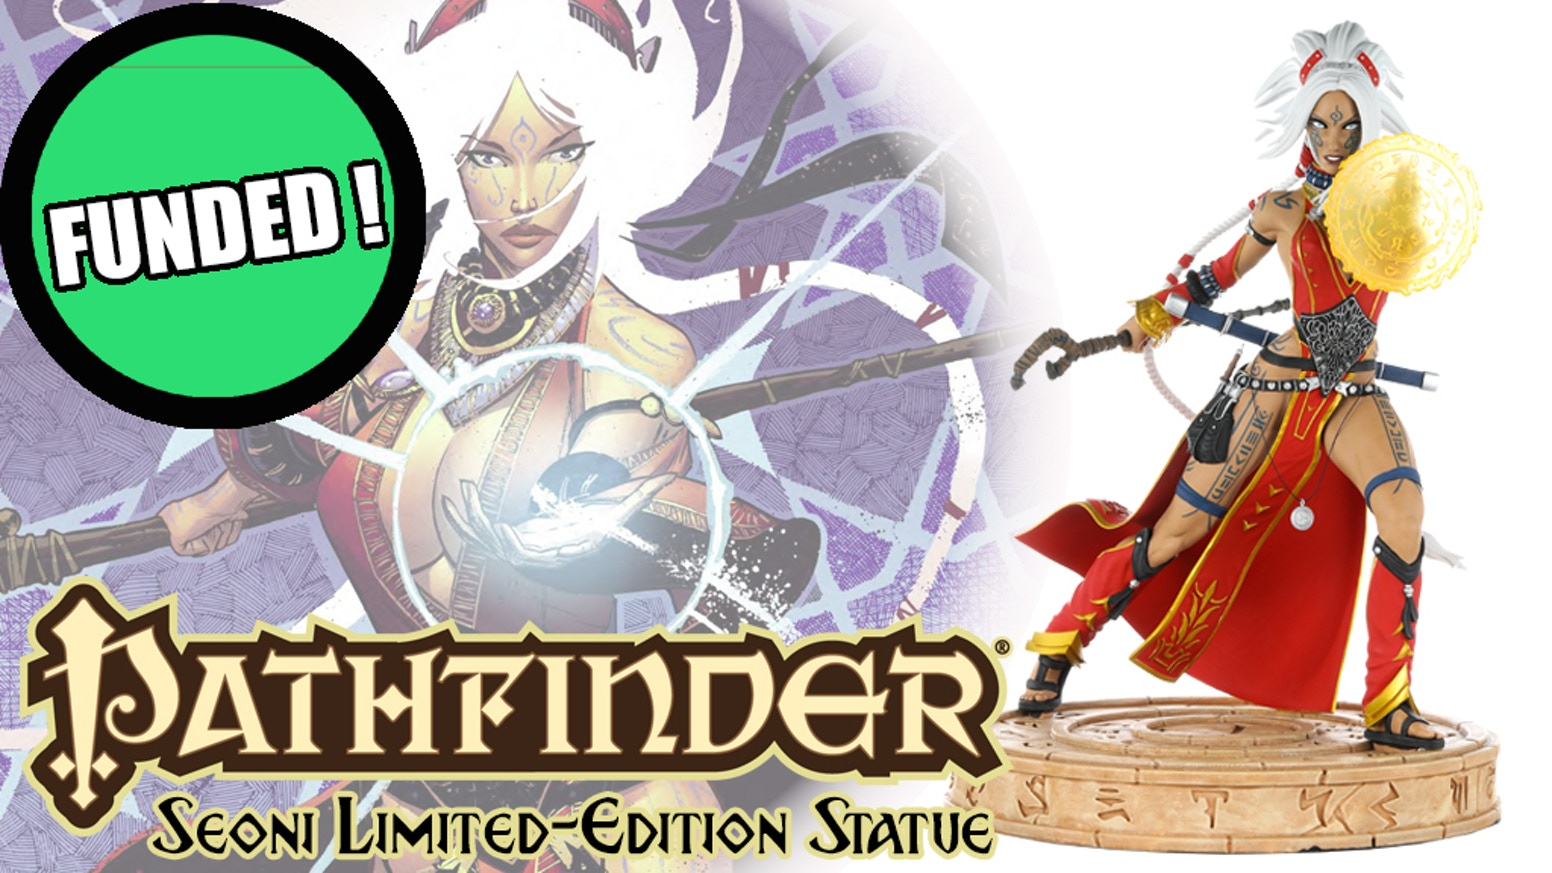 Pathfinder RPG Limited Edition Statue (FUNDED!) by Dynamite